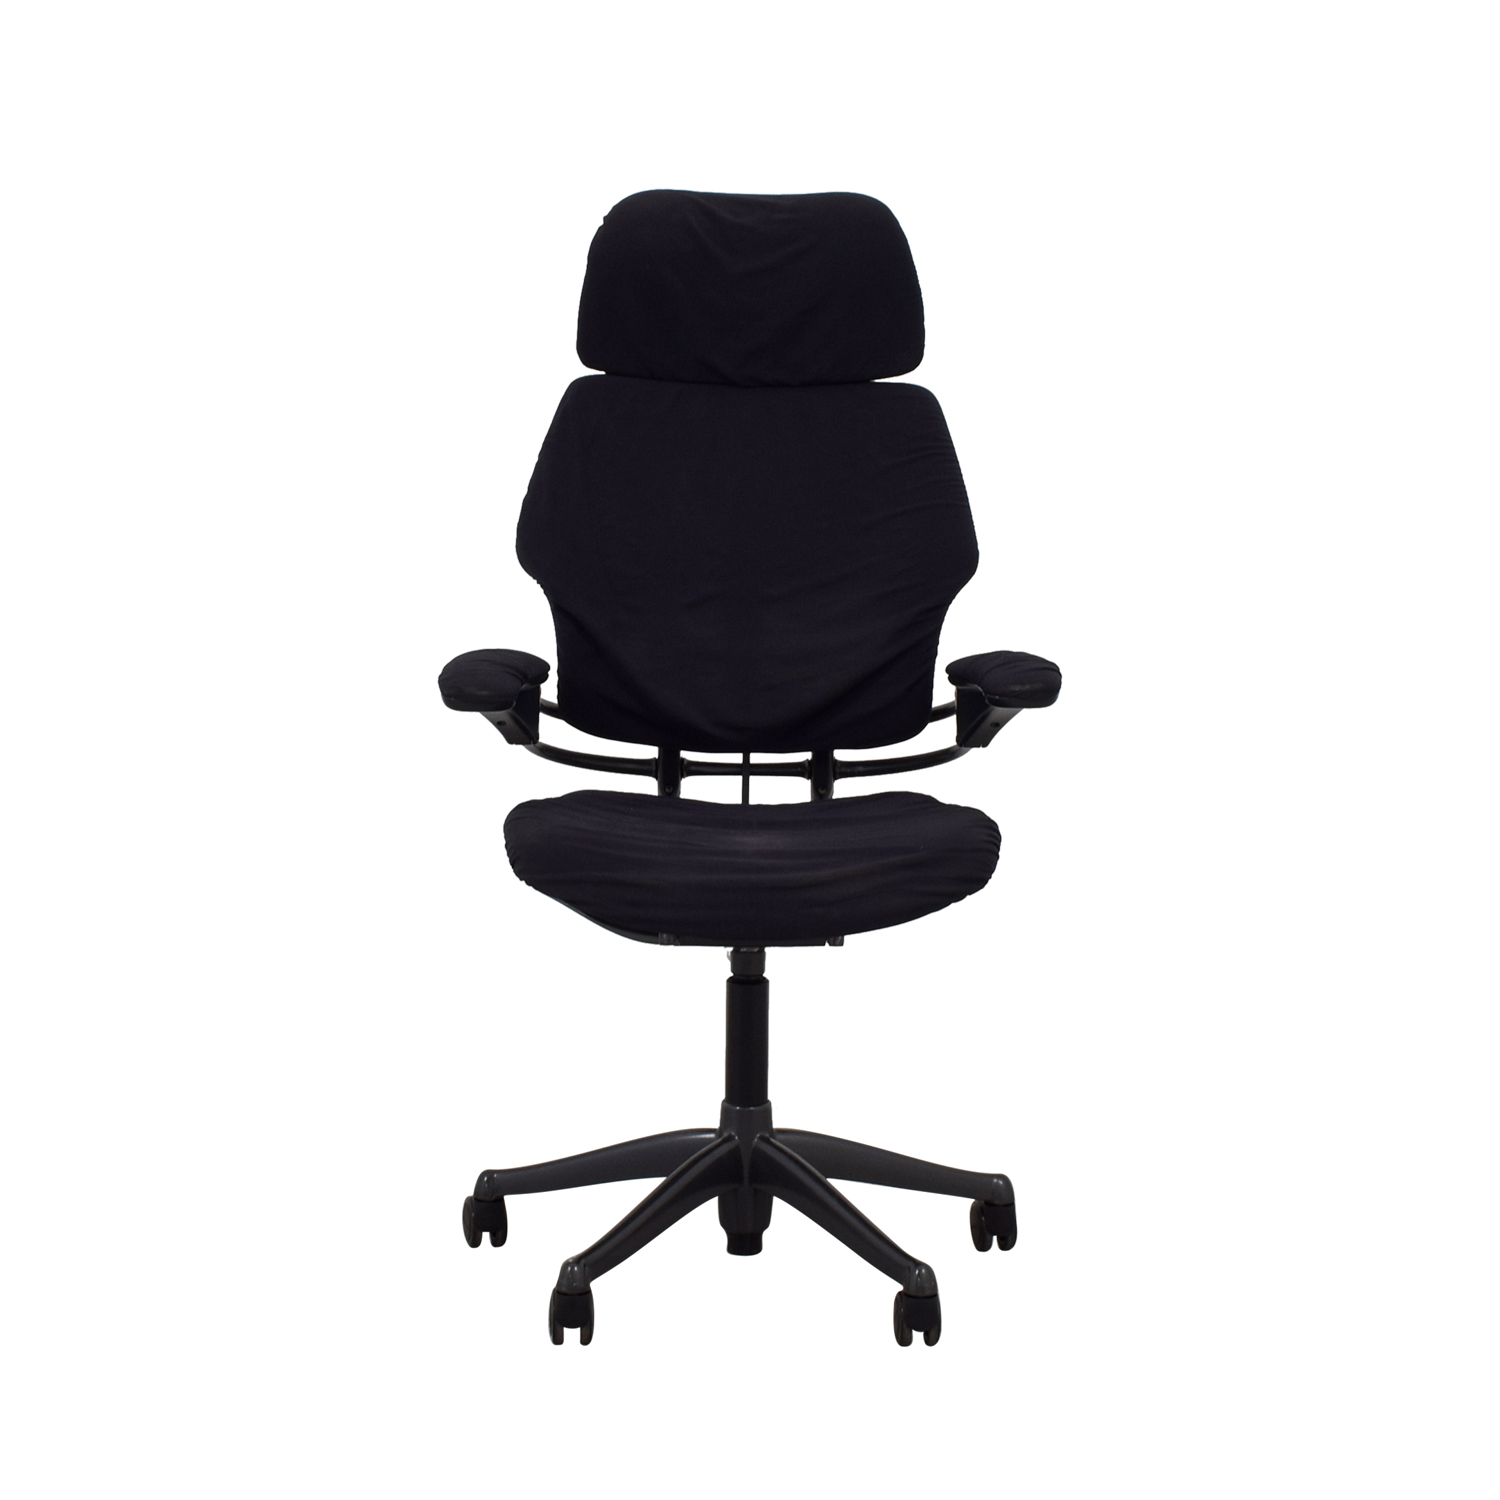 Human Scale Human Scale Black Freedom Chair with Headrest price